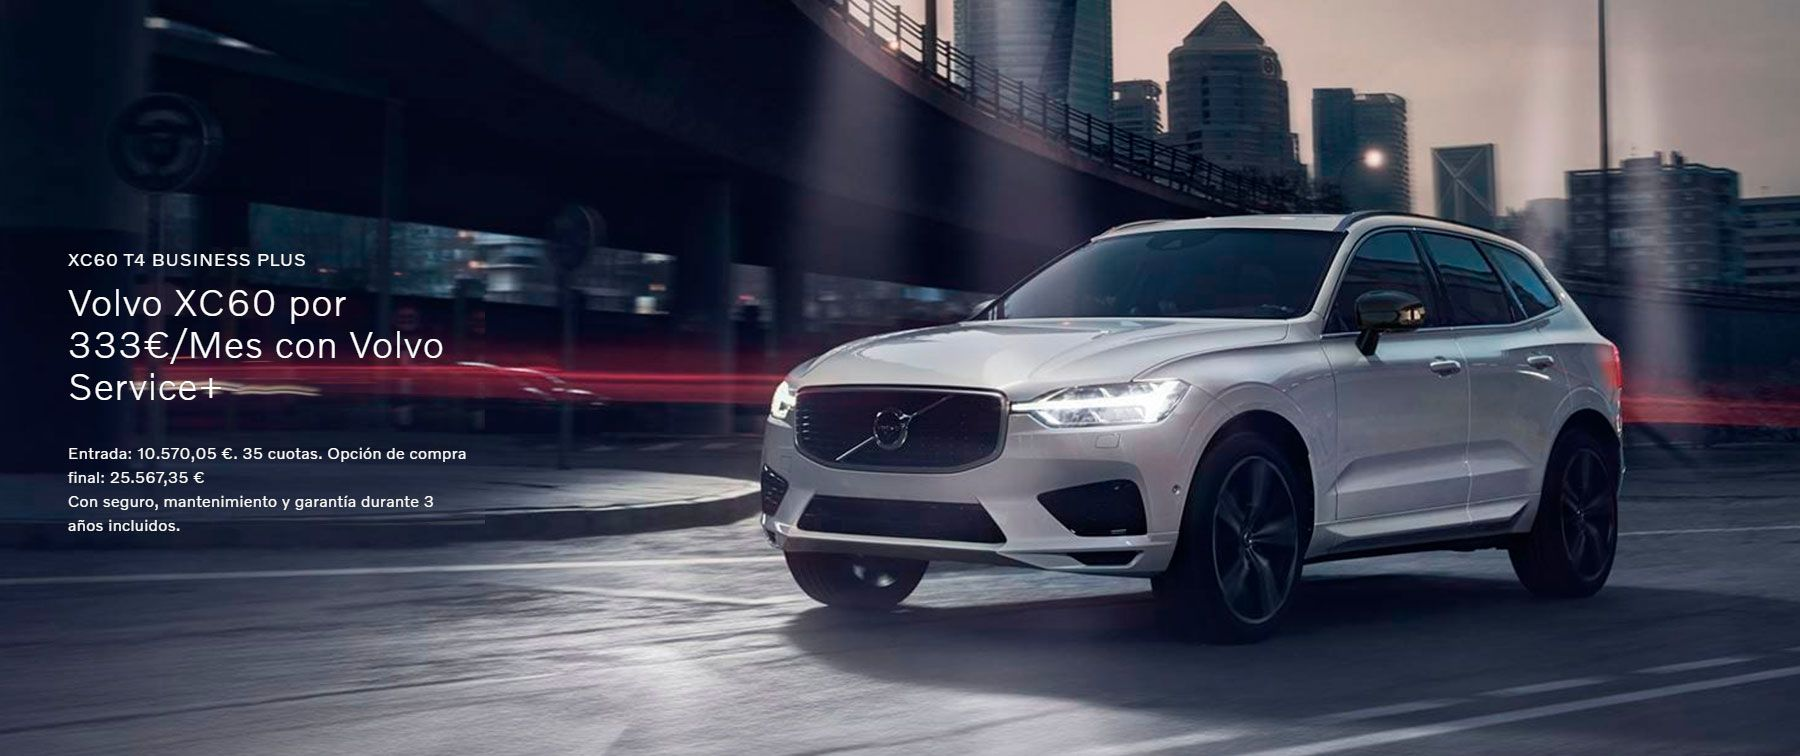 XC60 T4 Business Plus Por 333€/Mes con Service +